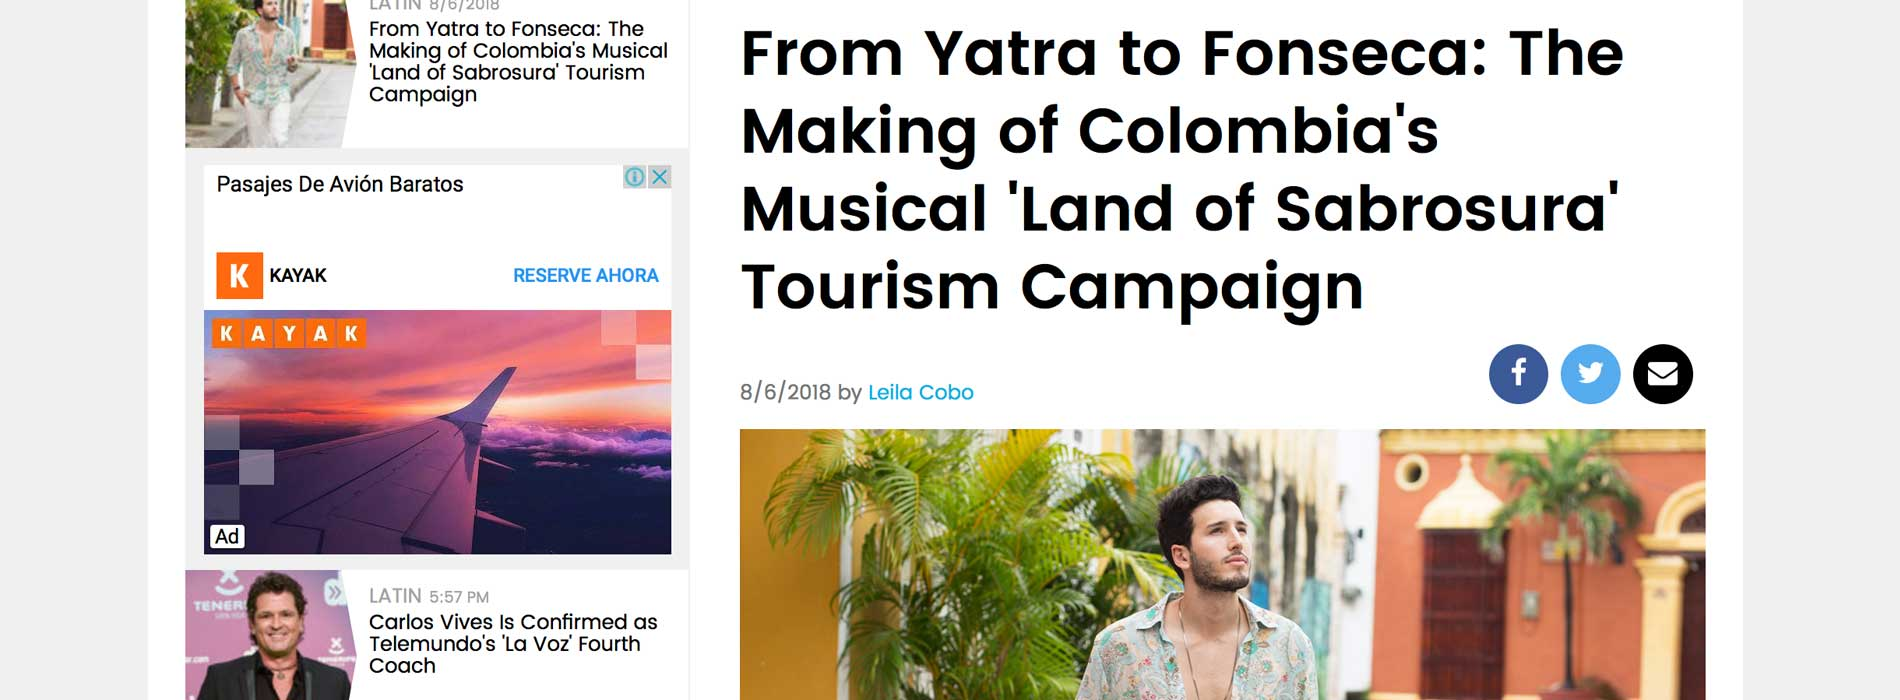 BILLBOARD: From Yatra to Fonseca: The Making of Colombia's Musical